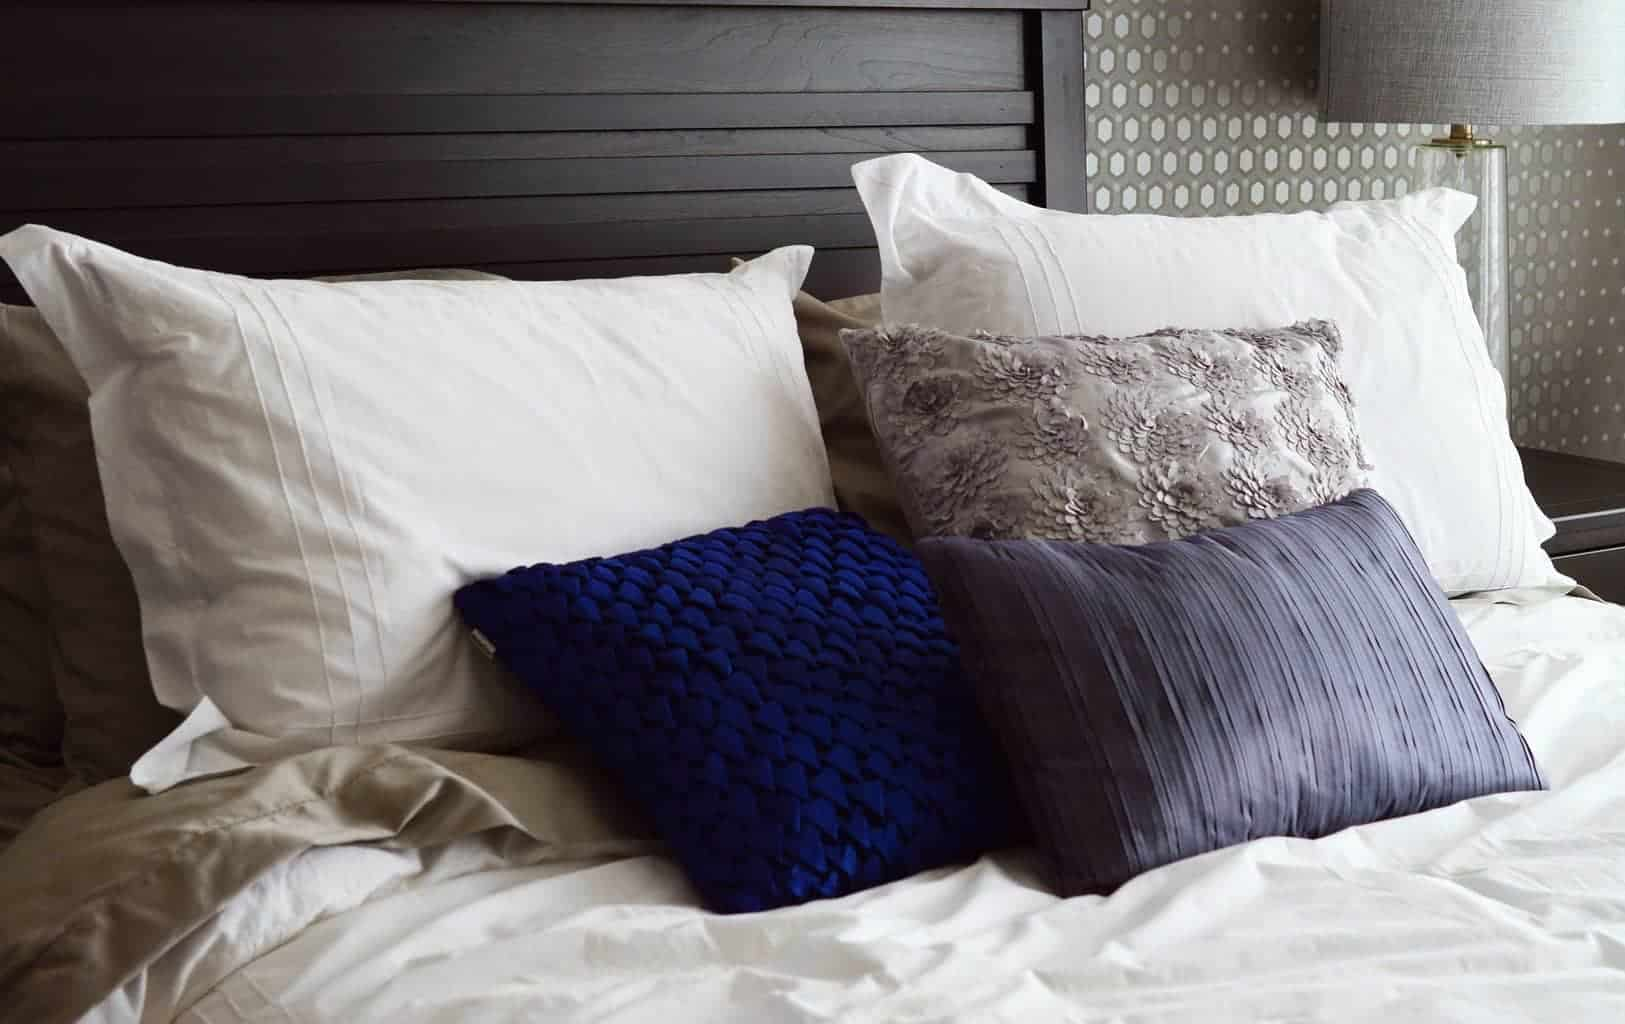 Easy on the Earth and Your Body, Too: All About Today's New Bamboo Mattresses